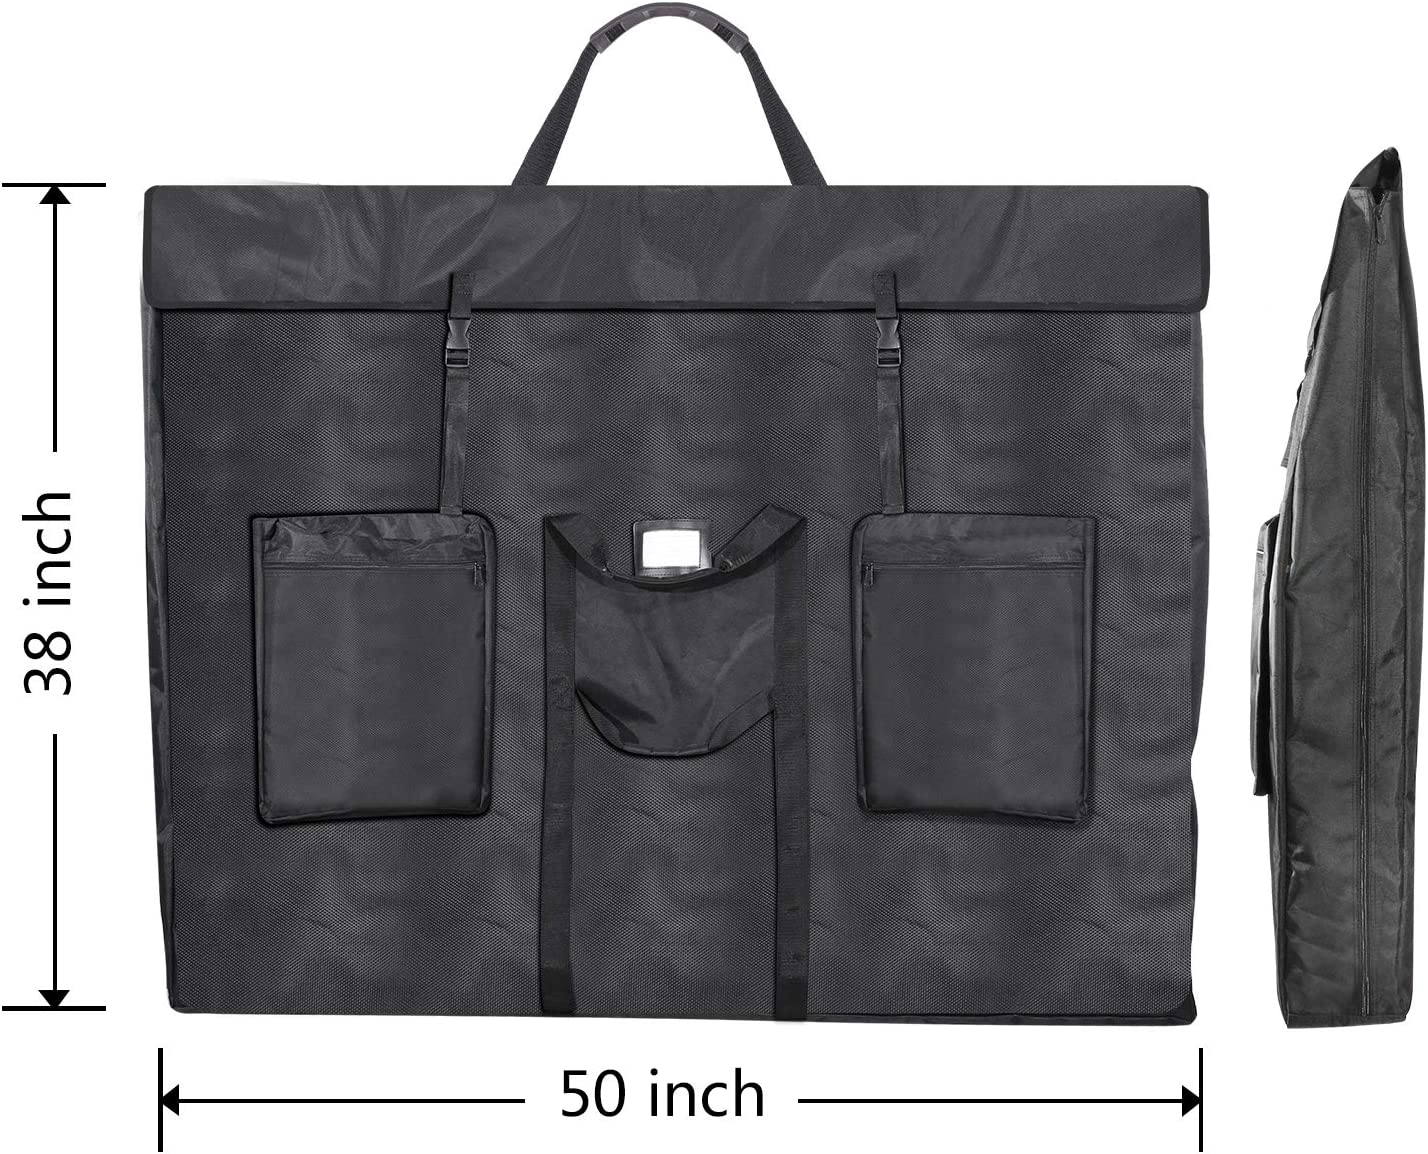 Great for LCD Screens Shoulder Strap /& Carry Handles Water Resistant Art Portfolio Monitors TVs /& Frames 1st Place Products Premium Oversized Transport Case 38 x 50 Inches Soft Sided